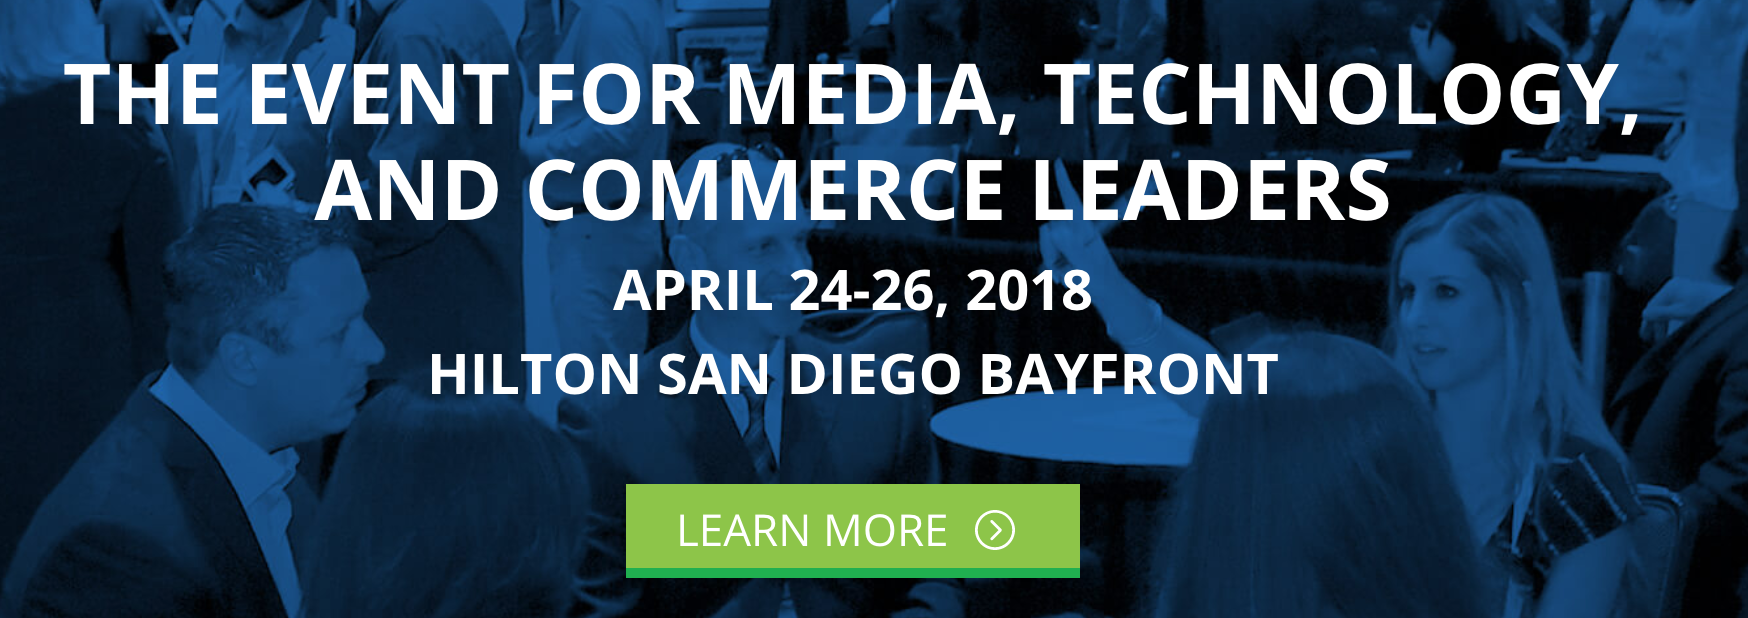 MTC Expo for media, technology, and commerce leaders